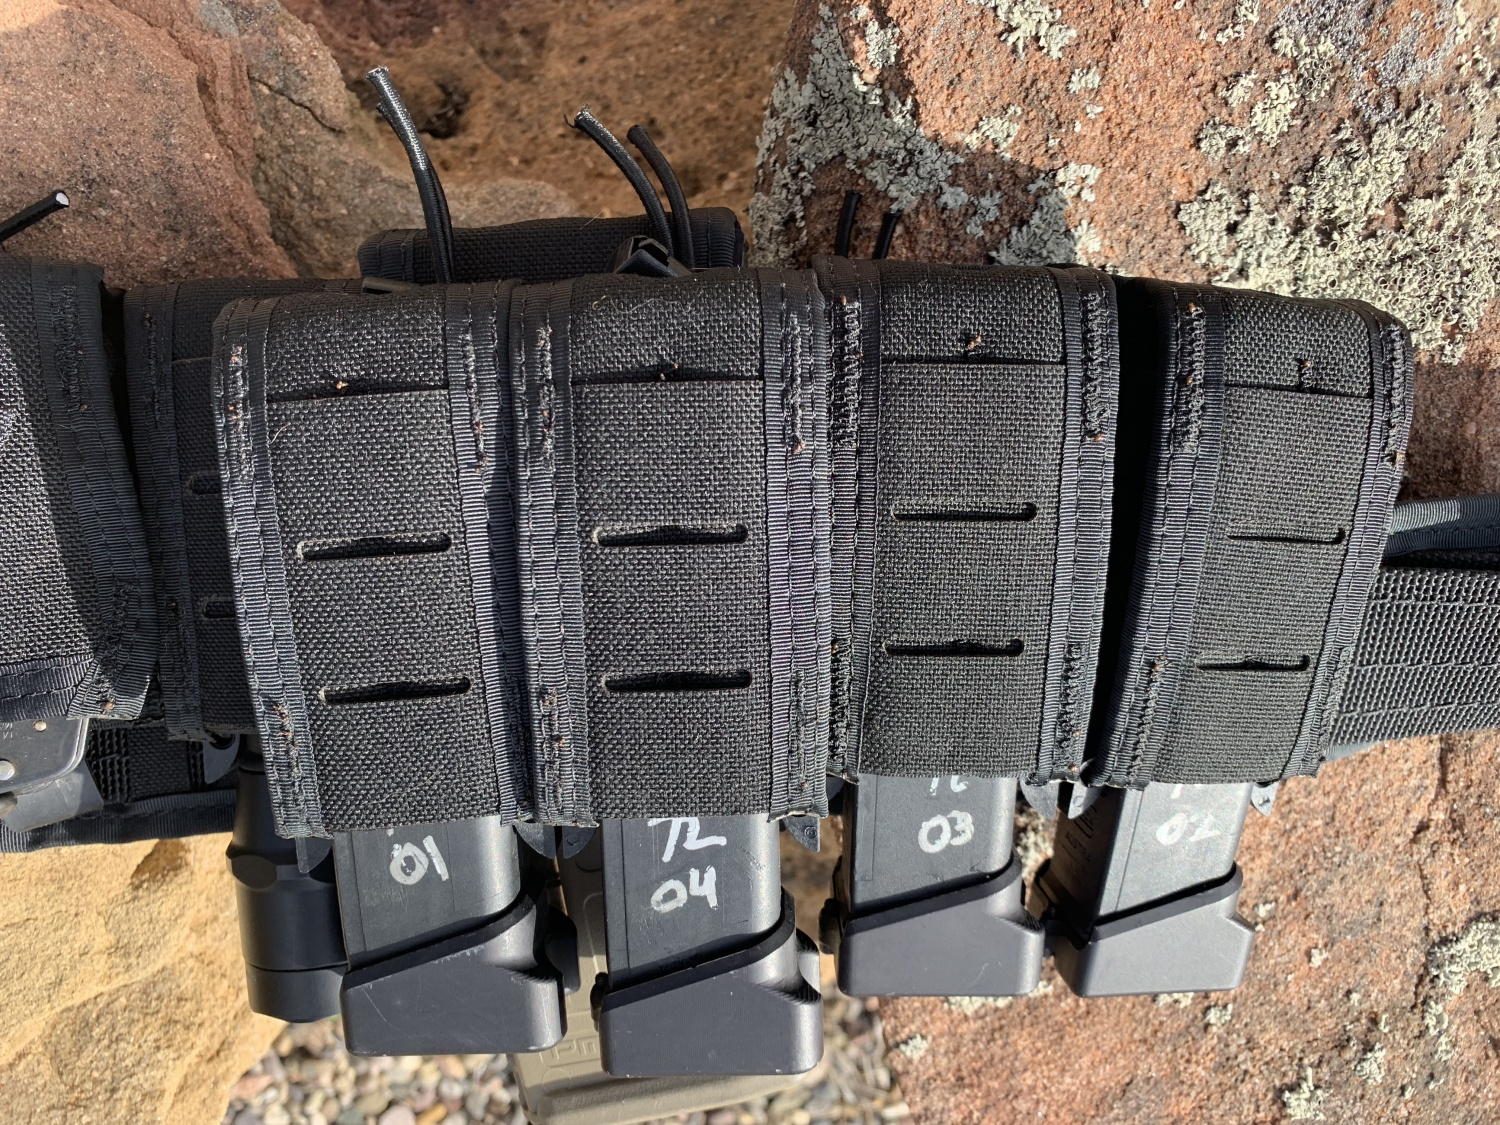 The Duty line from High Speed Gear has a much cleaner look without sacrificing any of the functionality. You can still attach additional pouches to the outside and adjust the internal tension.